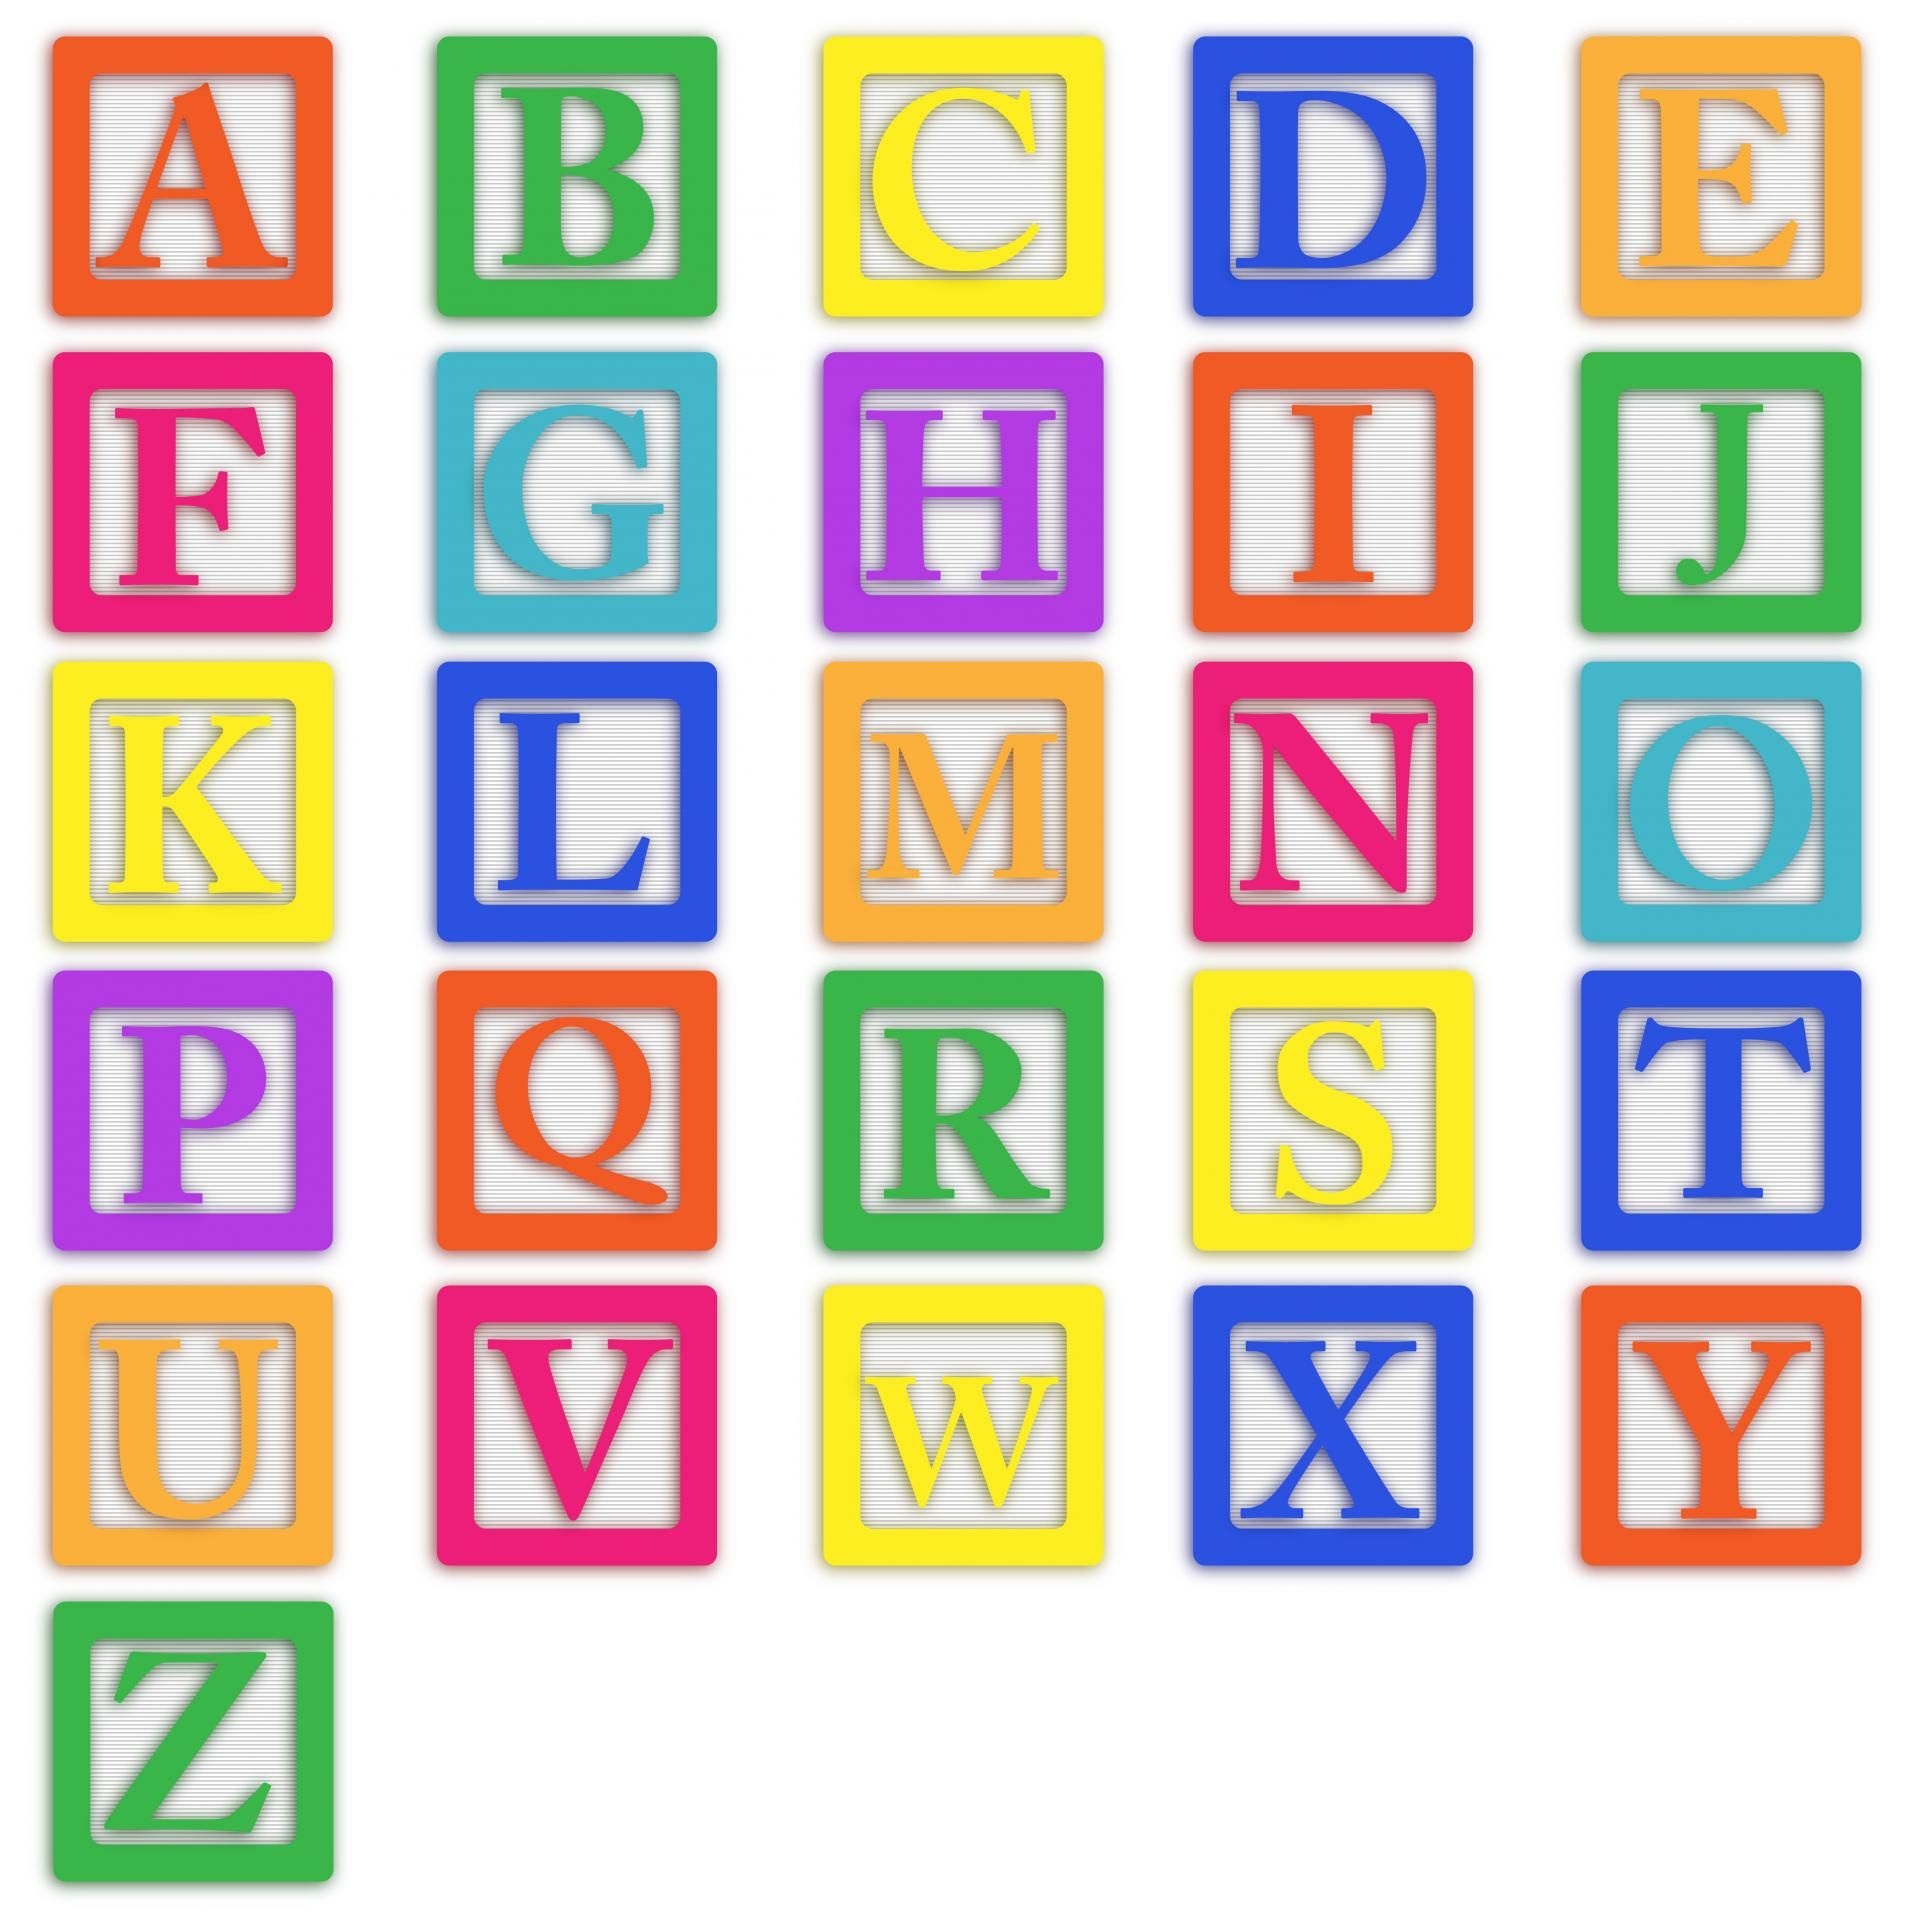 Baby Blocks Letters Free Stock Photo